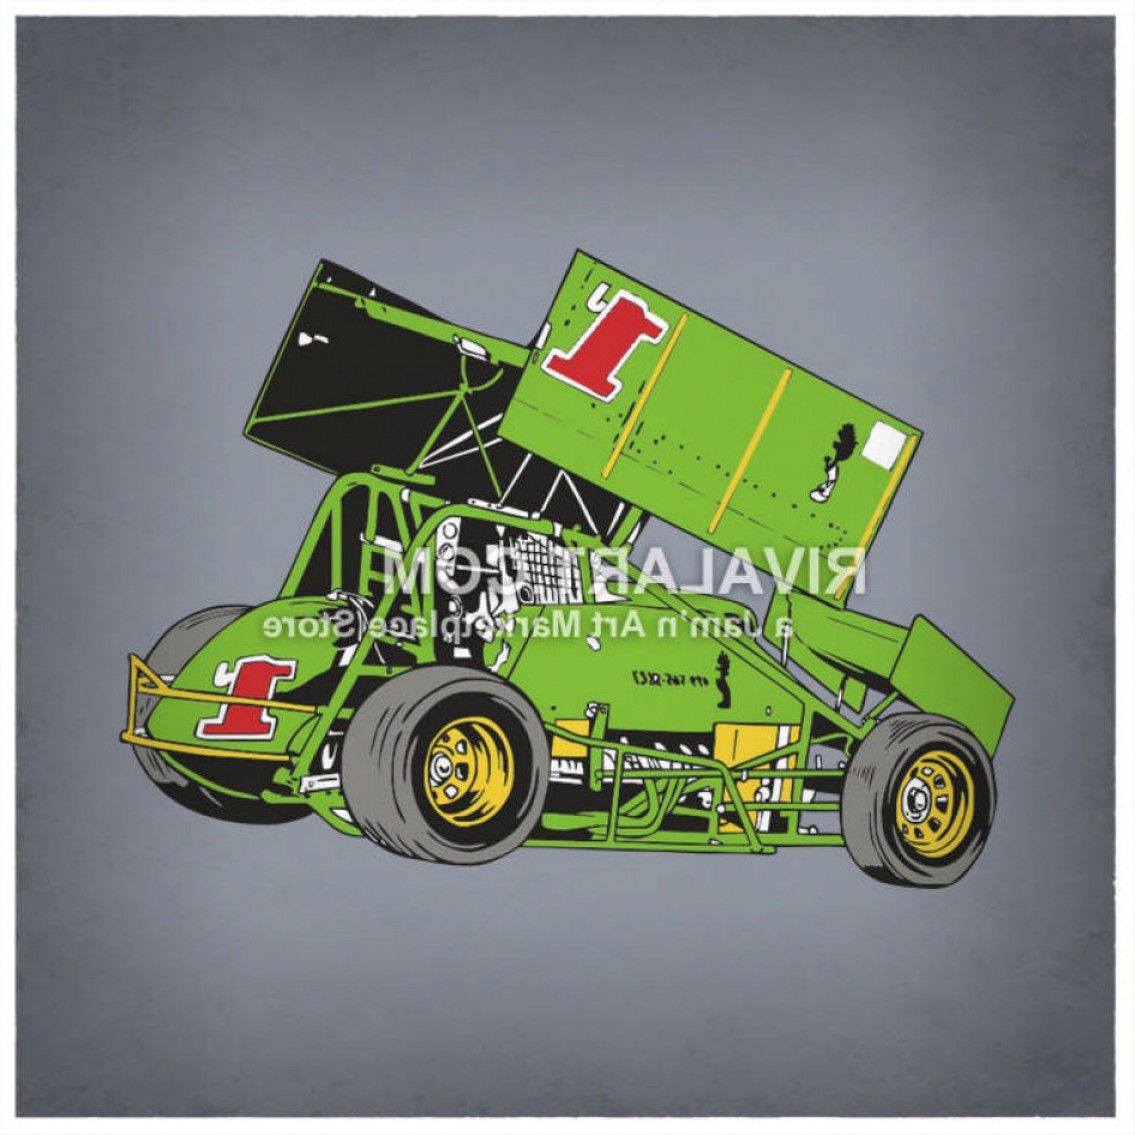 Vector Clipart Of A Vector Sprint Car Racing Race Graphic In.